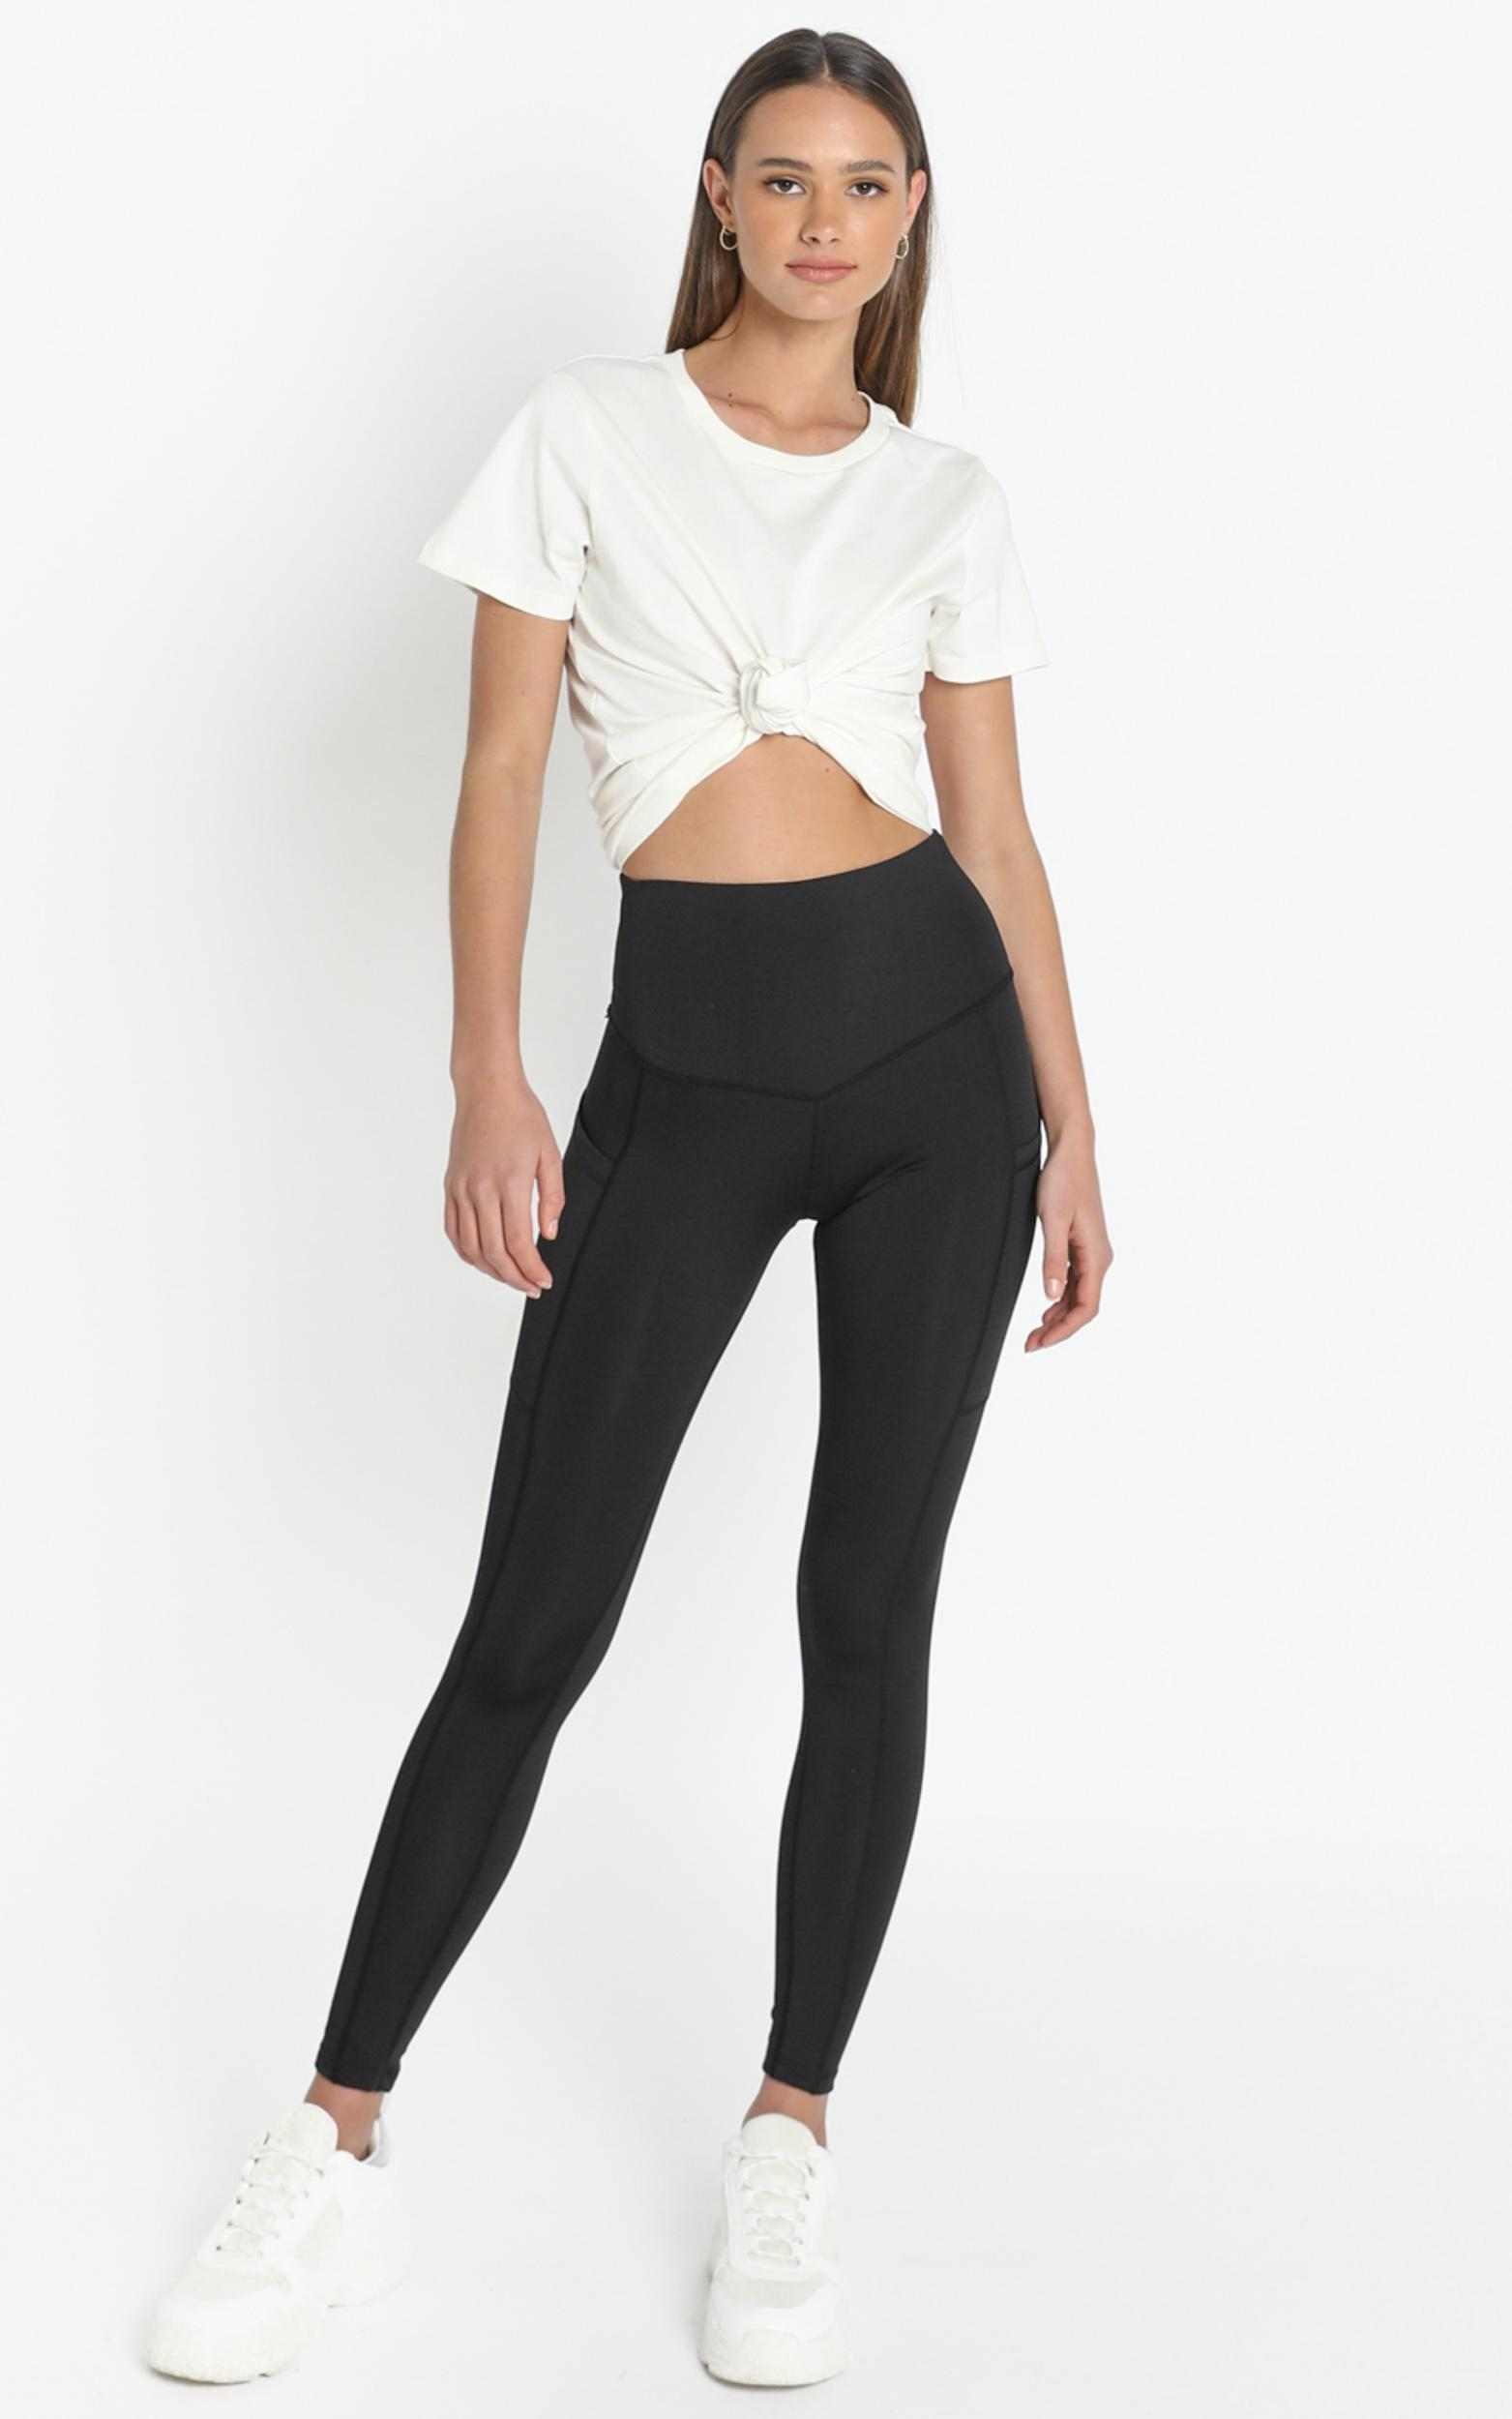 Evelyn High Waisted Activewear Tights in Black - M/L, Black, hi-res image number null